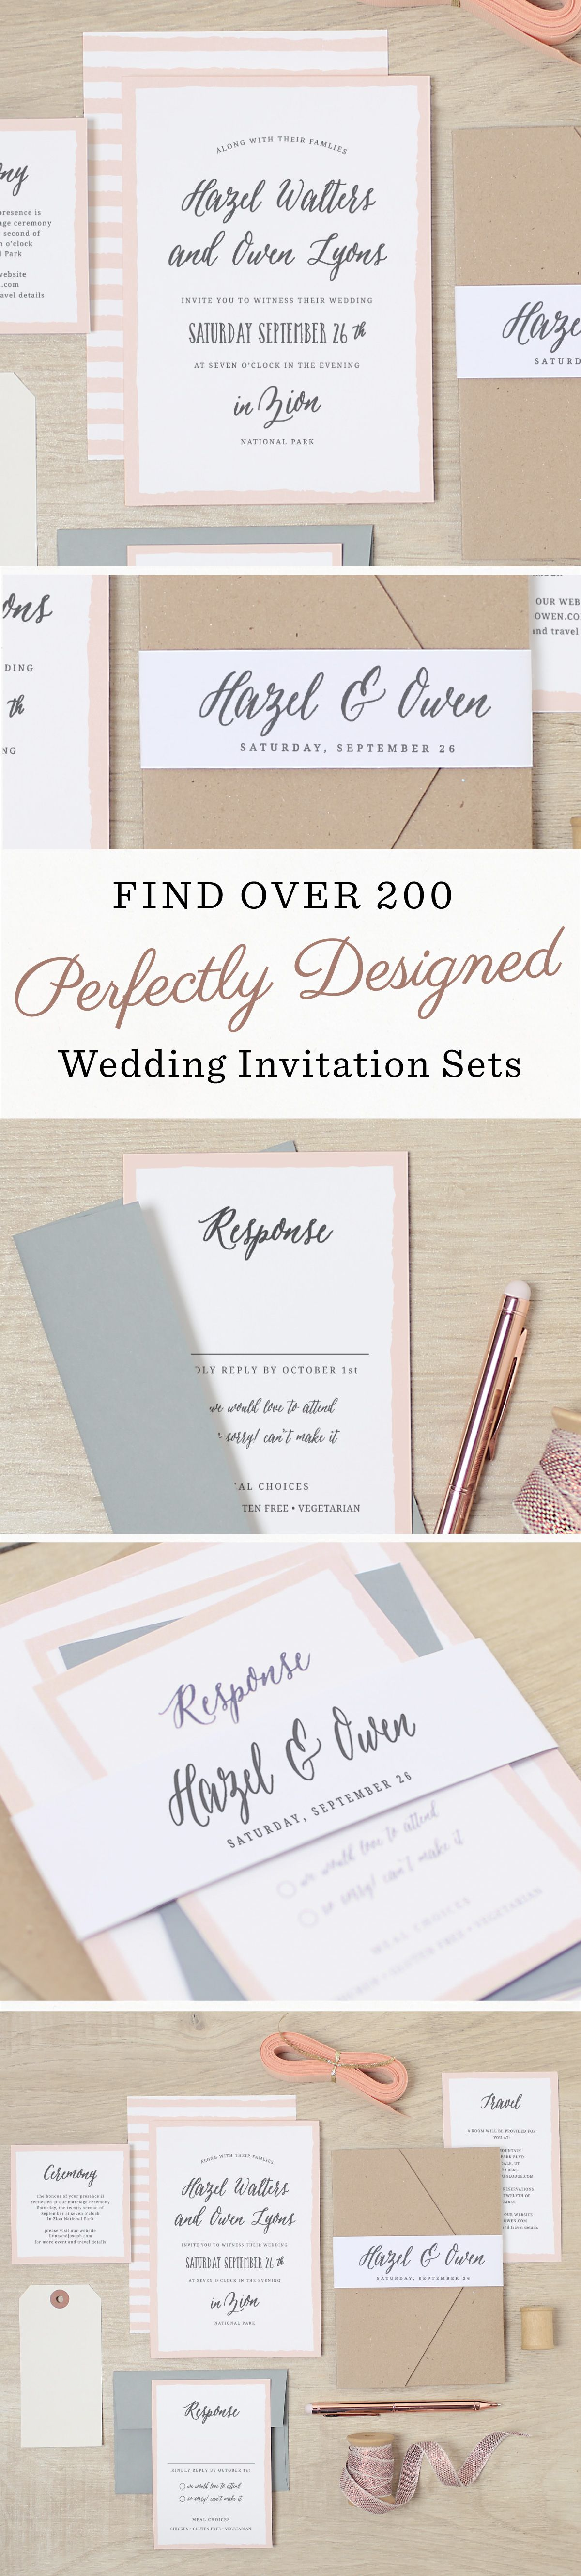 Create the perfect wedding invitation set with 200 unique designs create the perfect wedding invitation set with 200 unique designs that offer matching save the dates stopboris Gallery